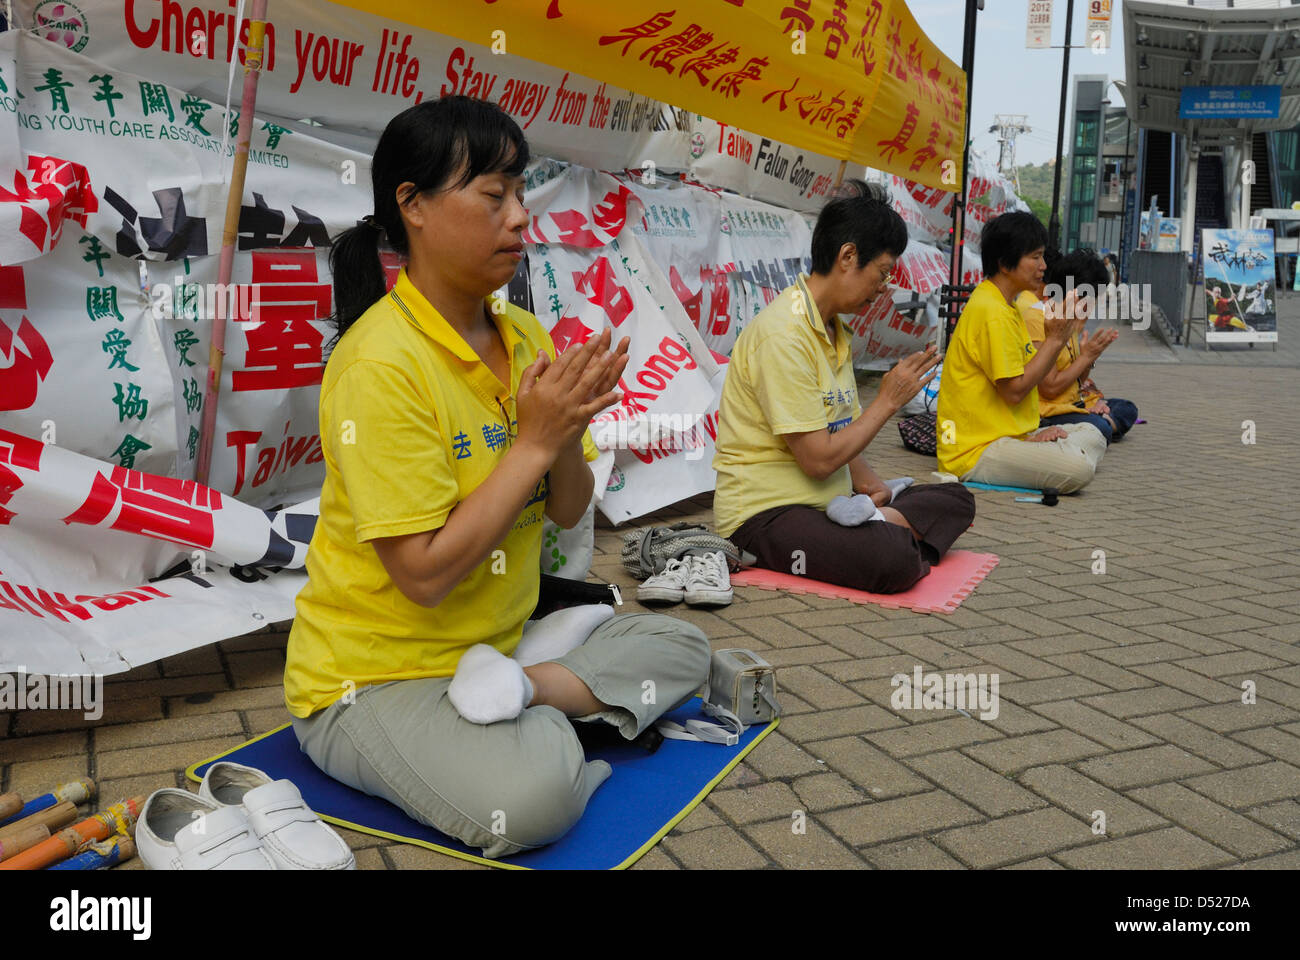 Falun Gong worshipers meditating. - Stock Image